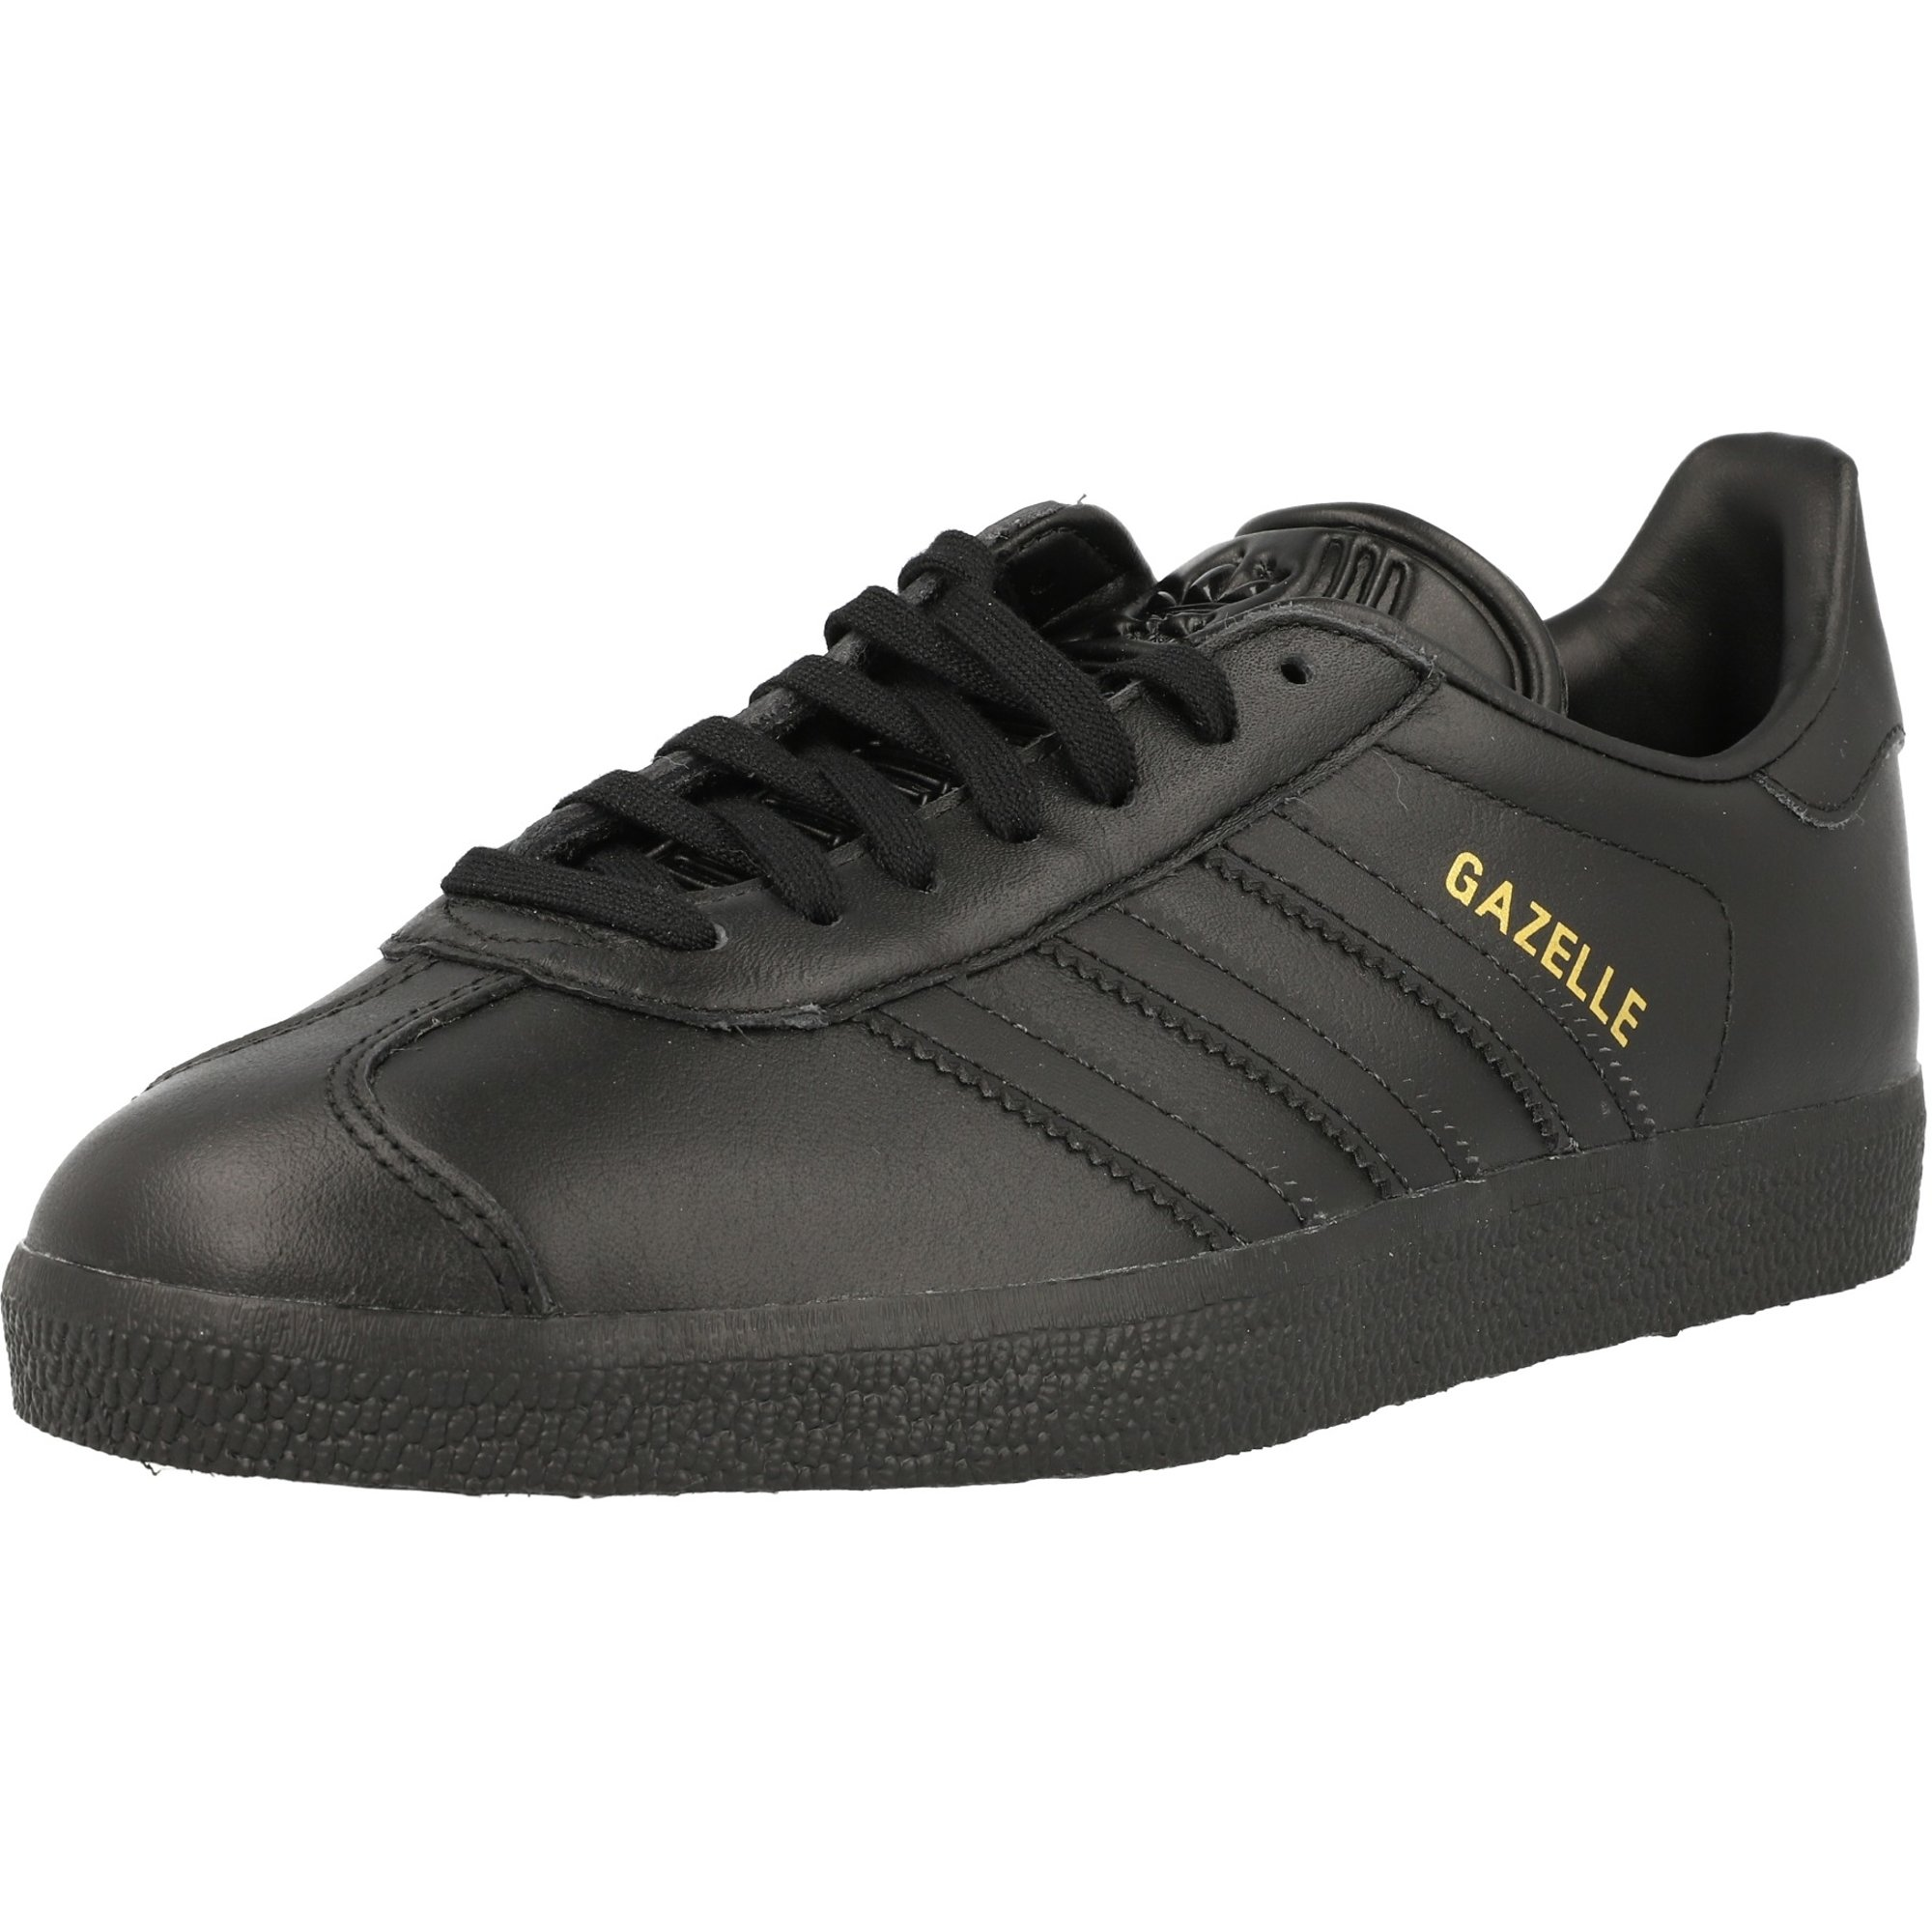 Adidas Gazelle Leather Sz 10 BlackGold (BB5497)